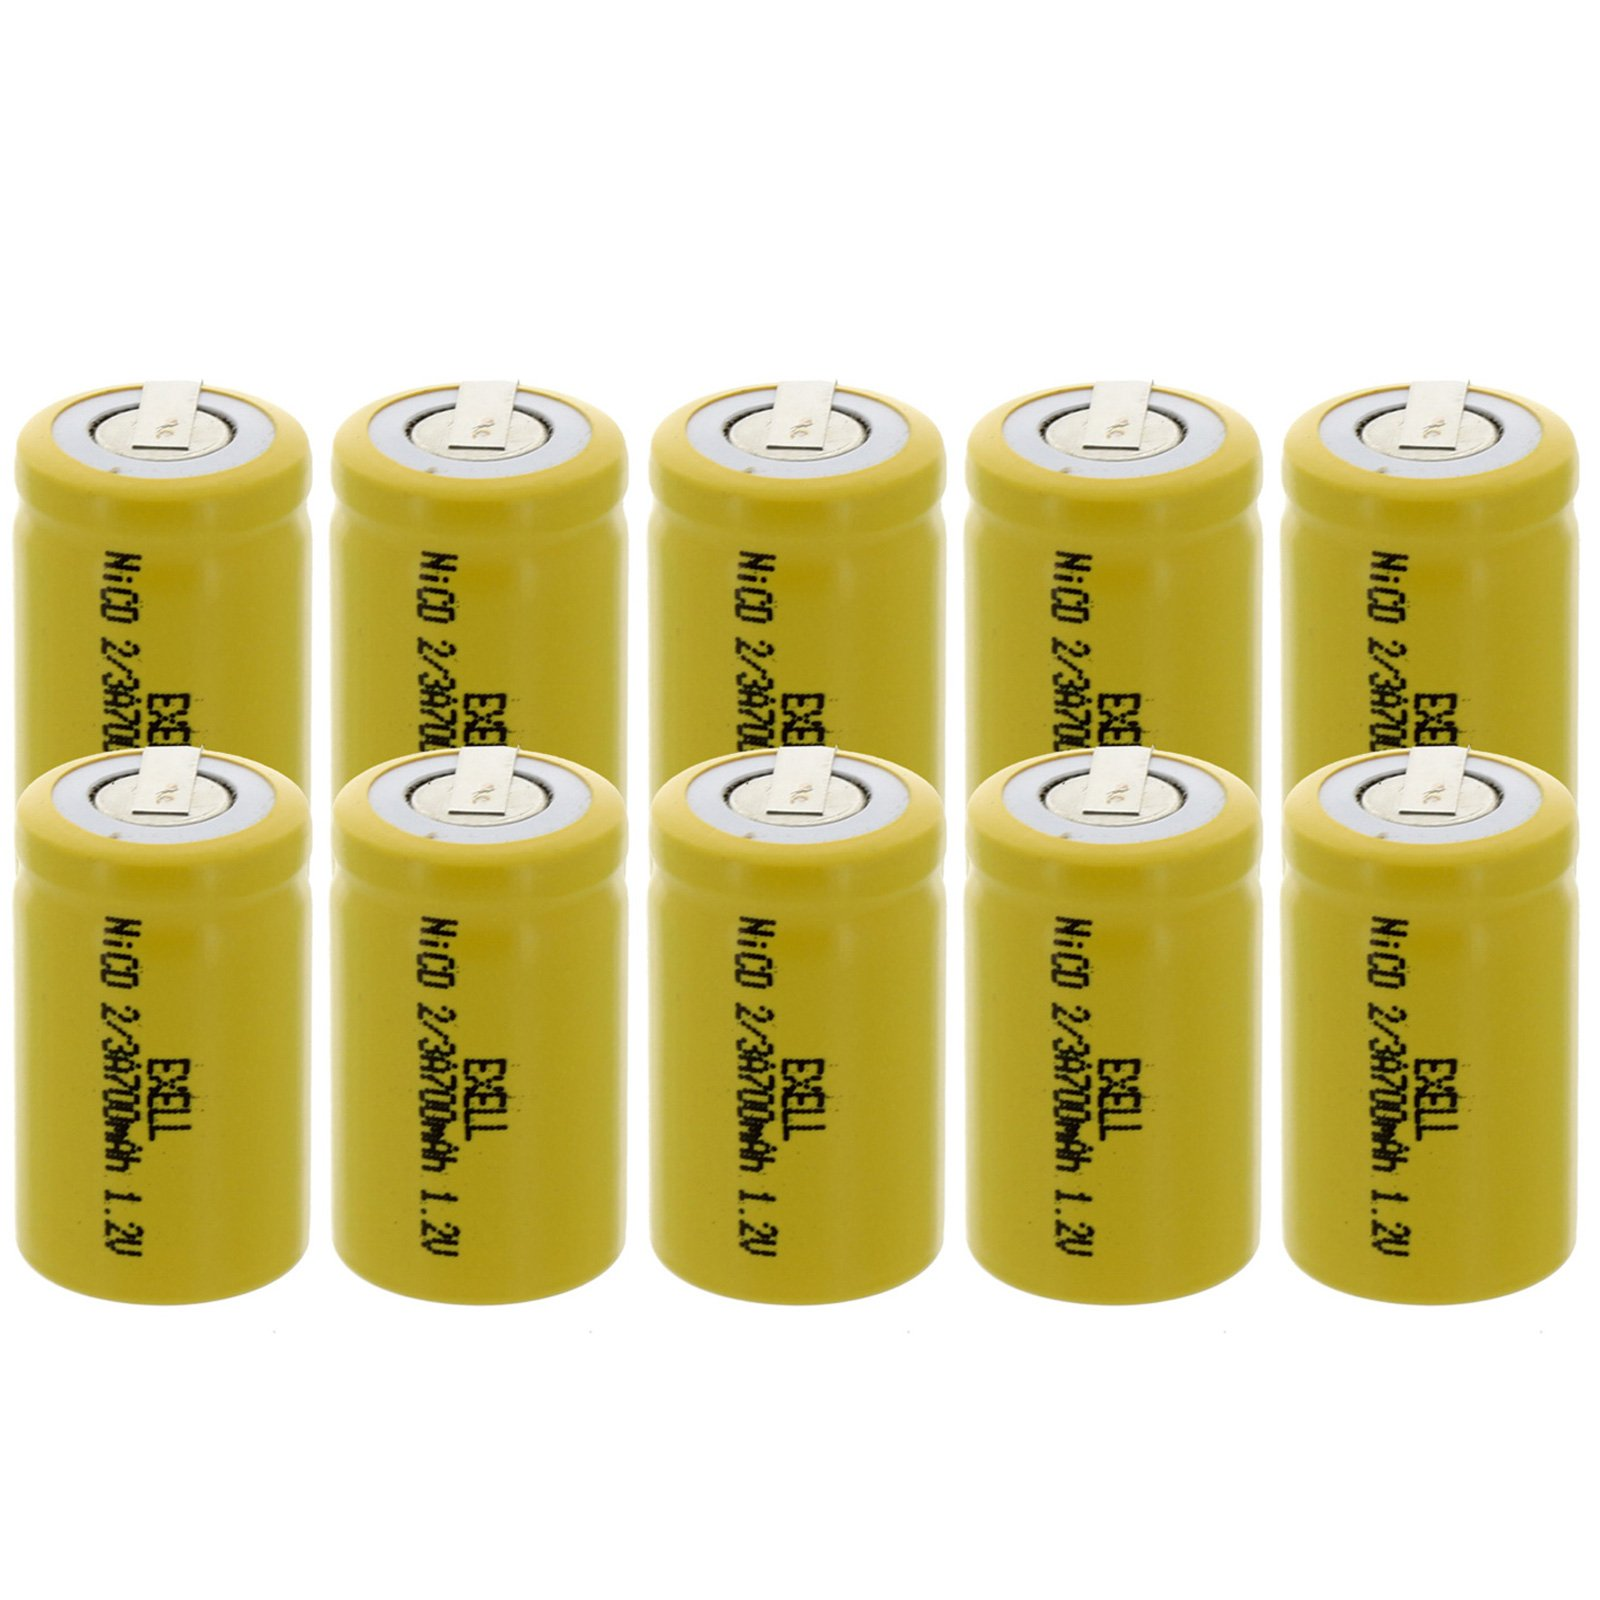 10x Exell 2/3A Size 1.2V 700mAh NiCD Rechargeable Batteries with Tabs for high power static applications (Telecoms, UPS and Smart grid), electric mopeds, meters, radios, RC devices, electric tools by Exell Battery